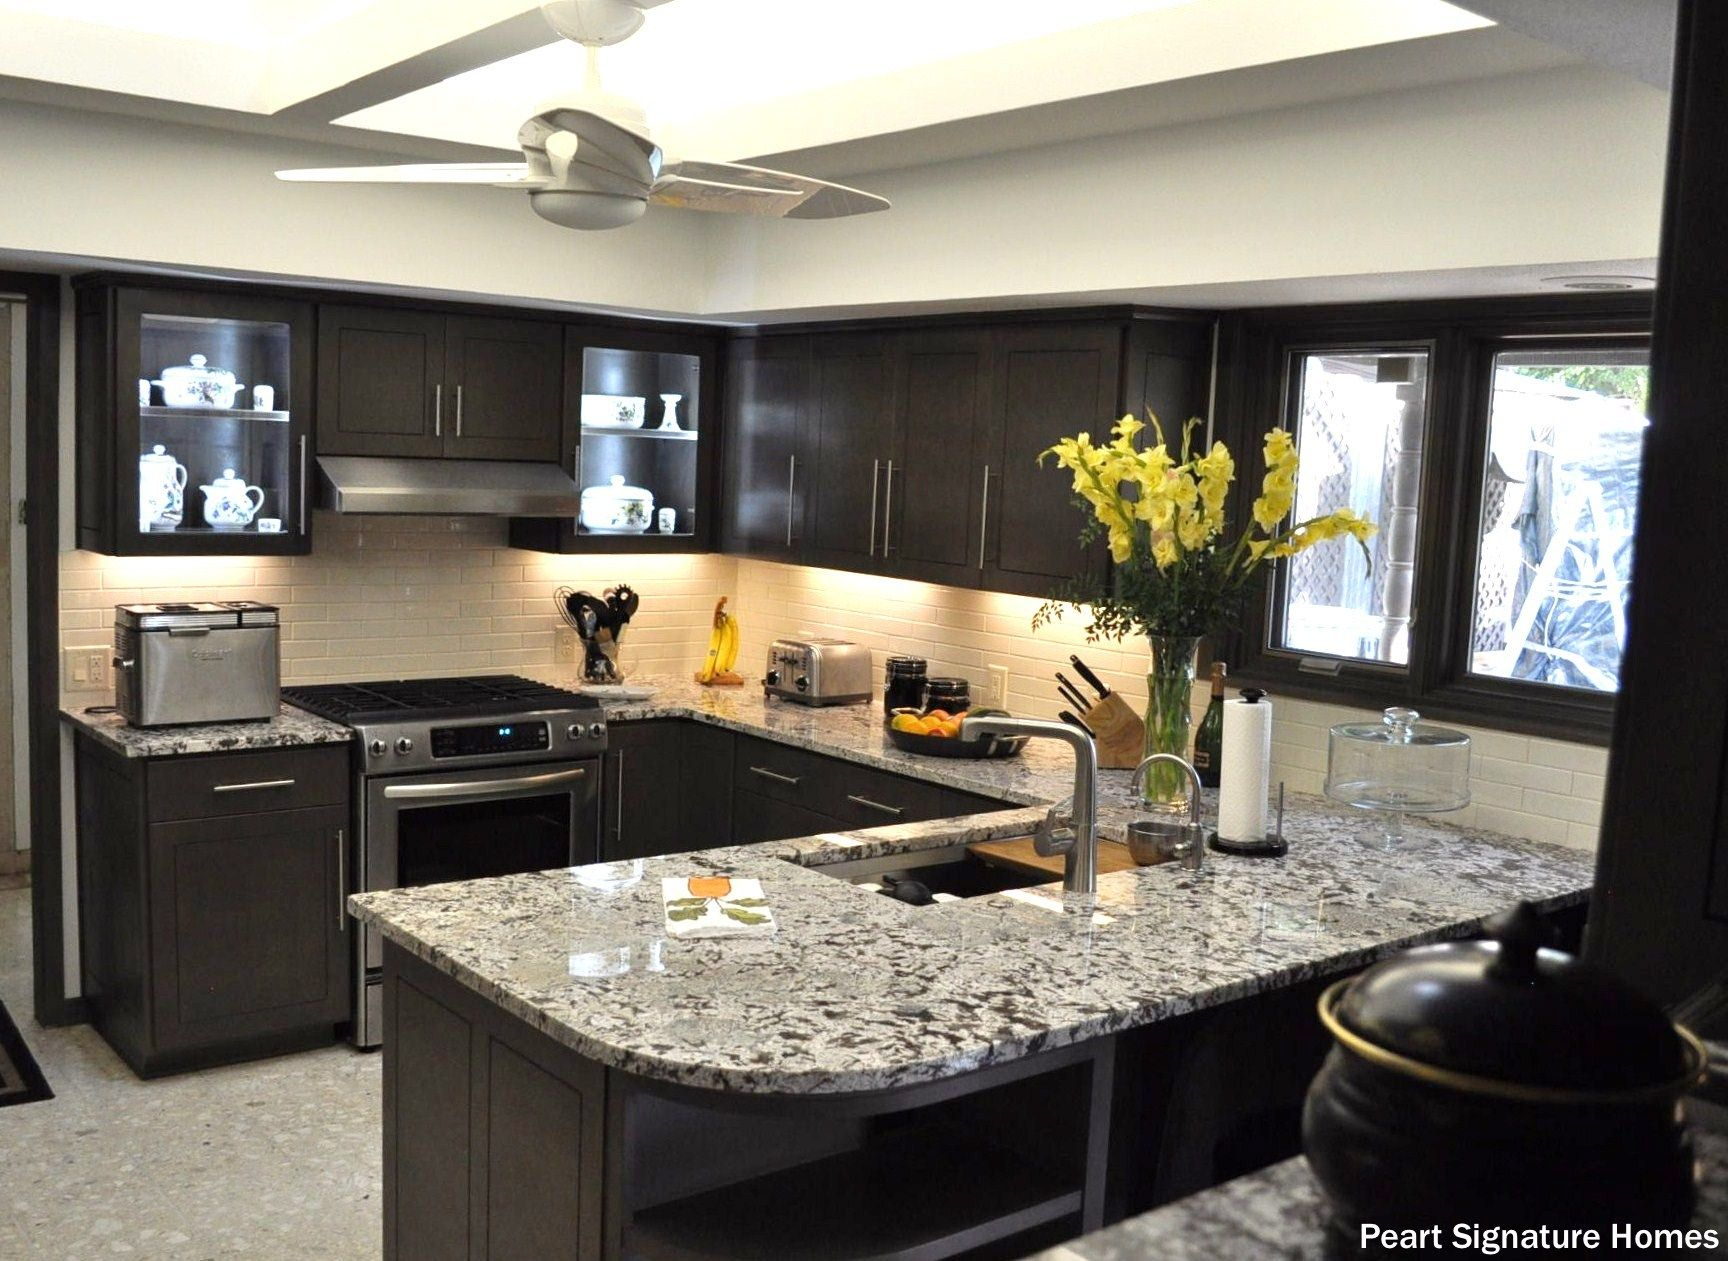 2020 Kitchen Remodel Cost Average Cost To Redo Kitchen Kitchen Remodel Cost Estimator Kitchen Remodel Small Kitchen Remodel